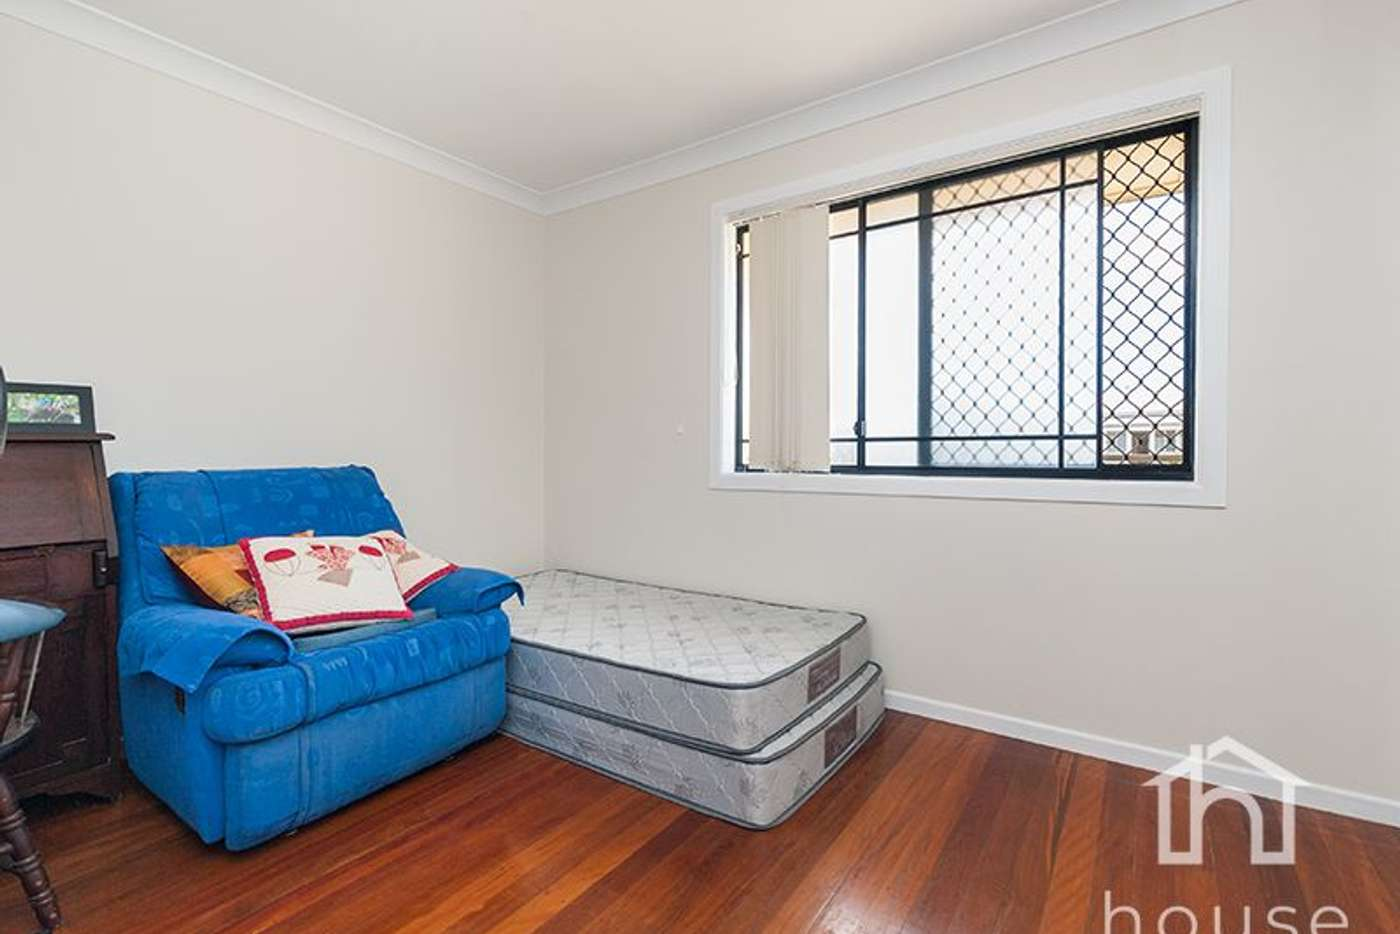 Sixth view of Homely unit listing, 5/288 Cornwall Street, Greenslopes QLD 4120